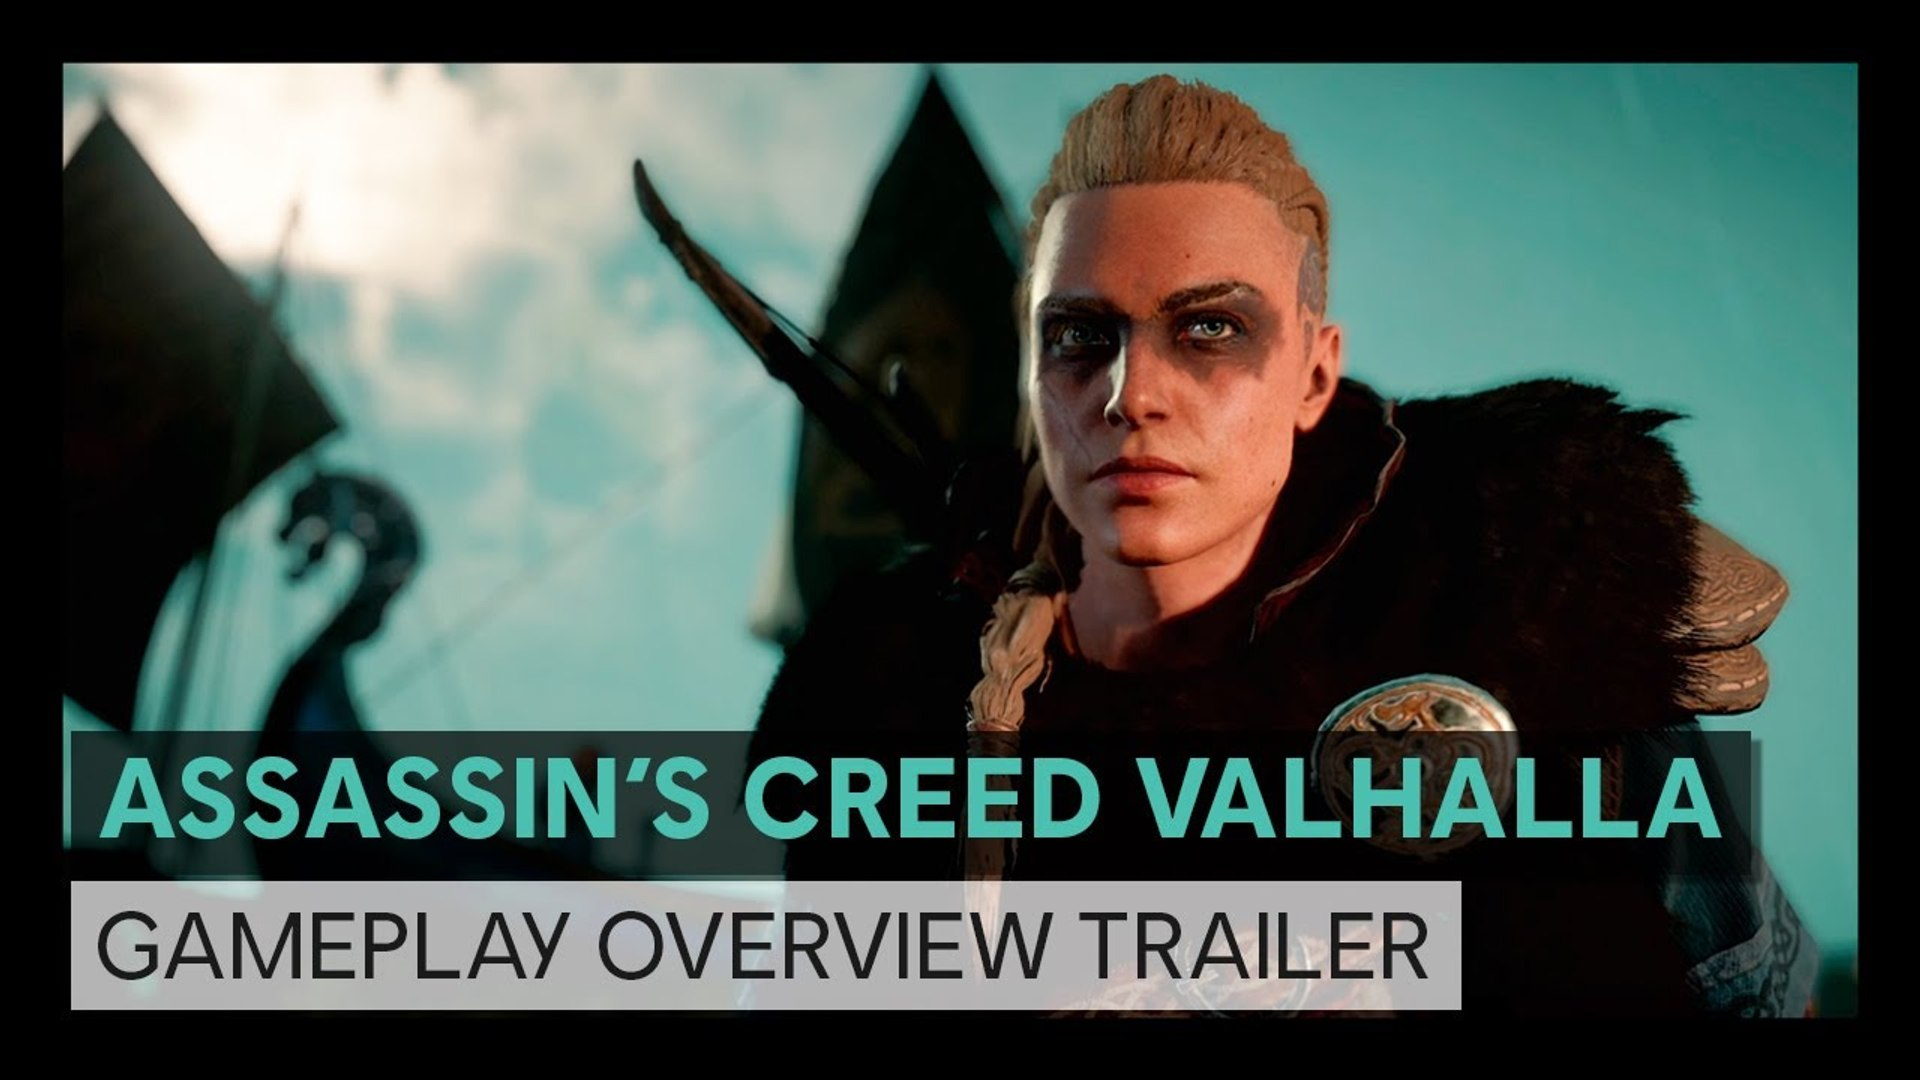 Assassin S Creed Valhalla Gameplay Overview Trailer 2020 Video Dailymotion